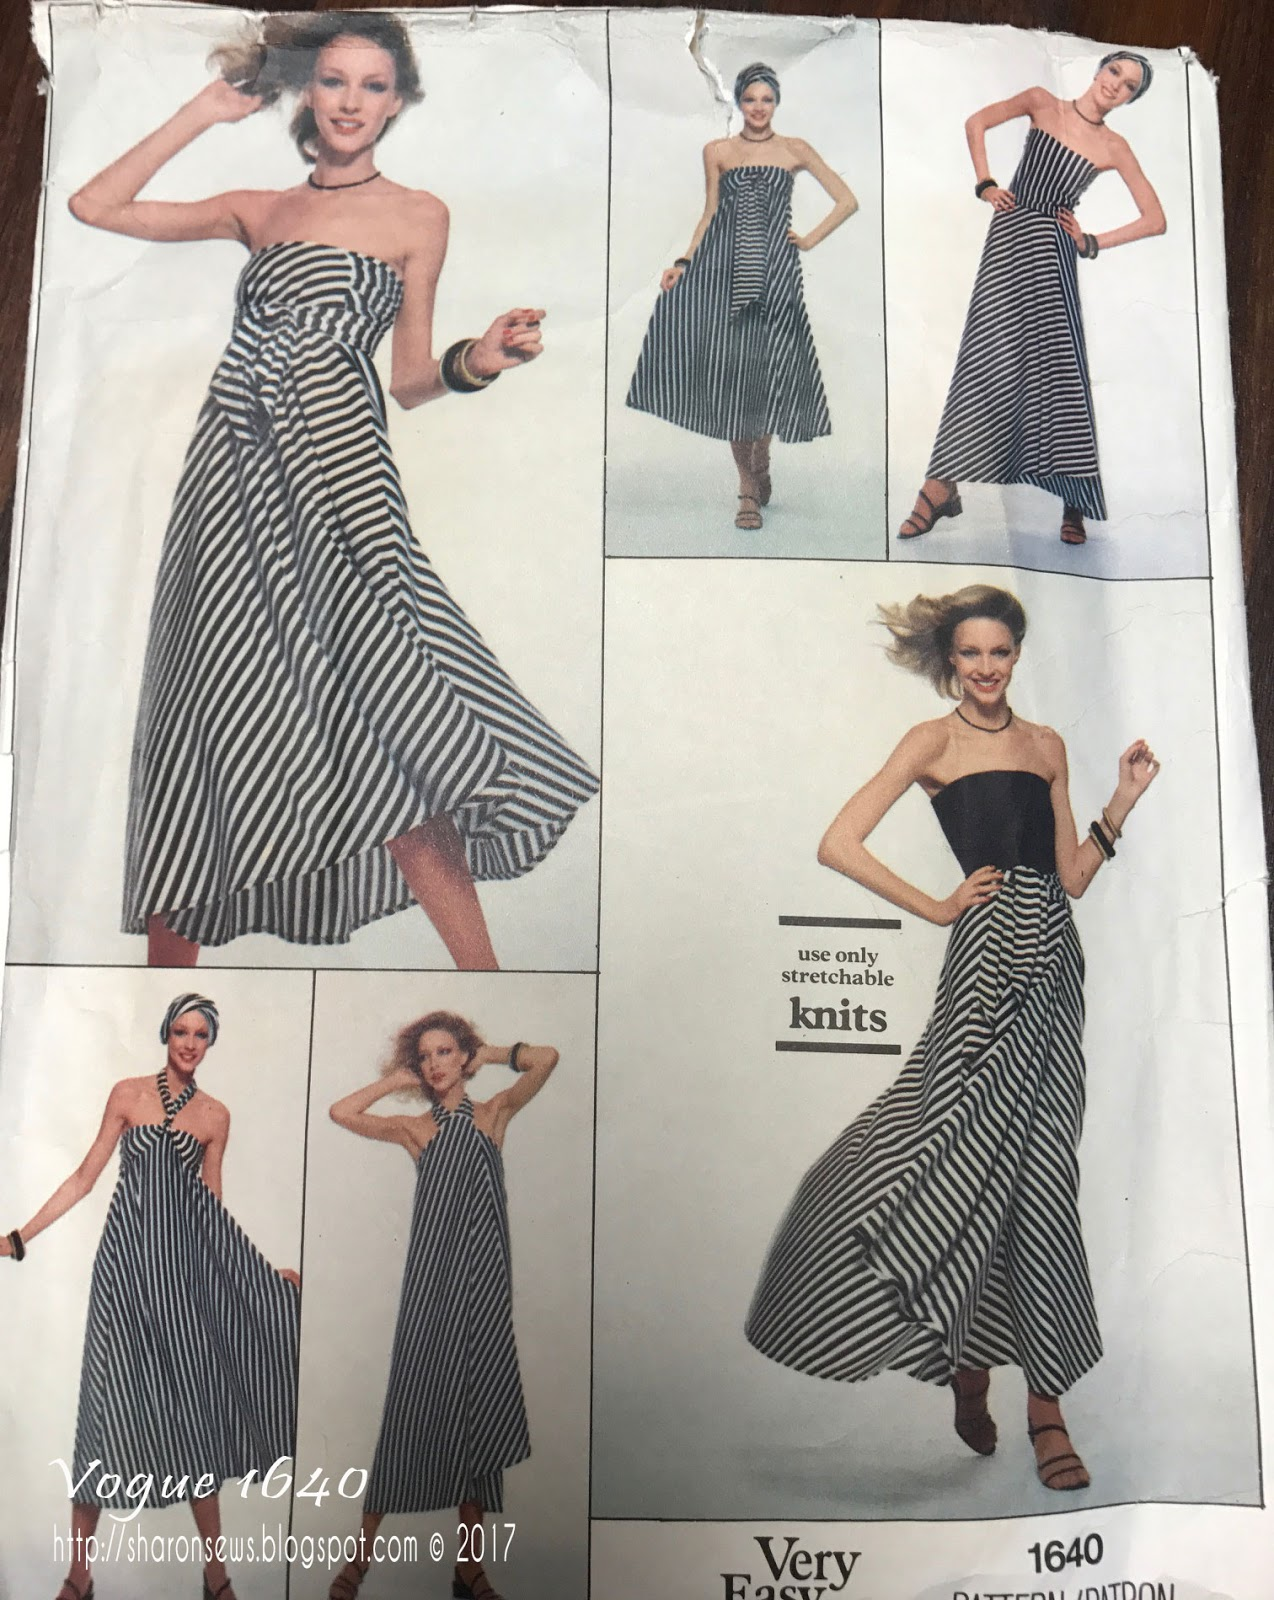 Wred Dress Or Skirt Has Attached Pleated Tie Ends Pattern Includes Instructions For Wearing As A With Bodice Tied In Variety Of Ways